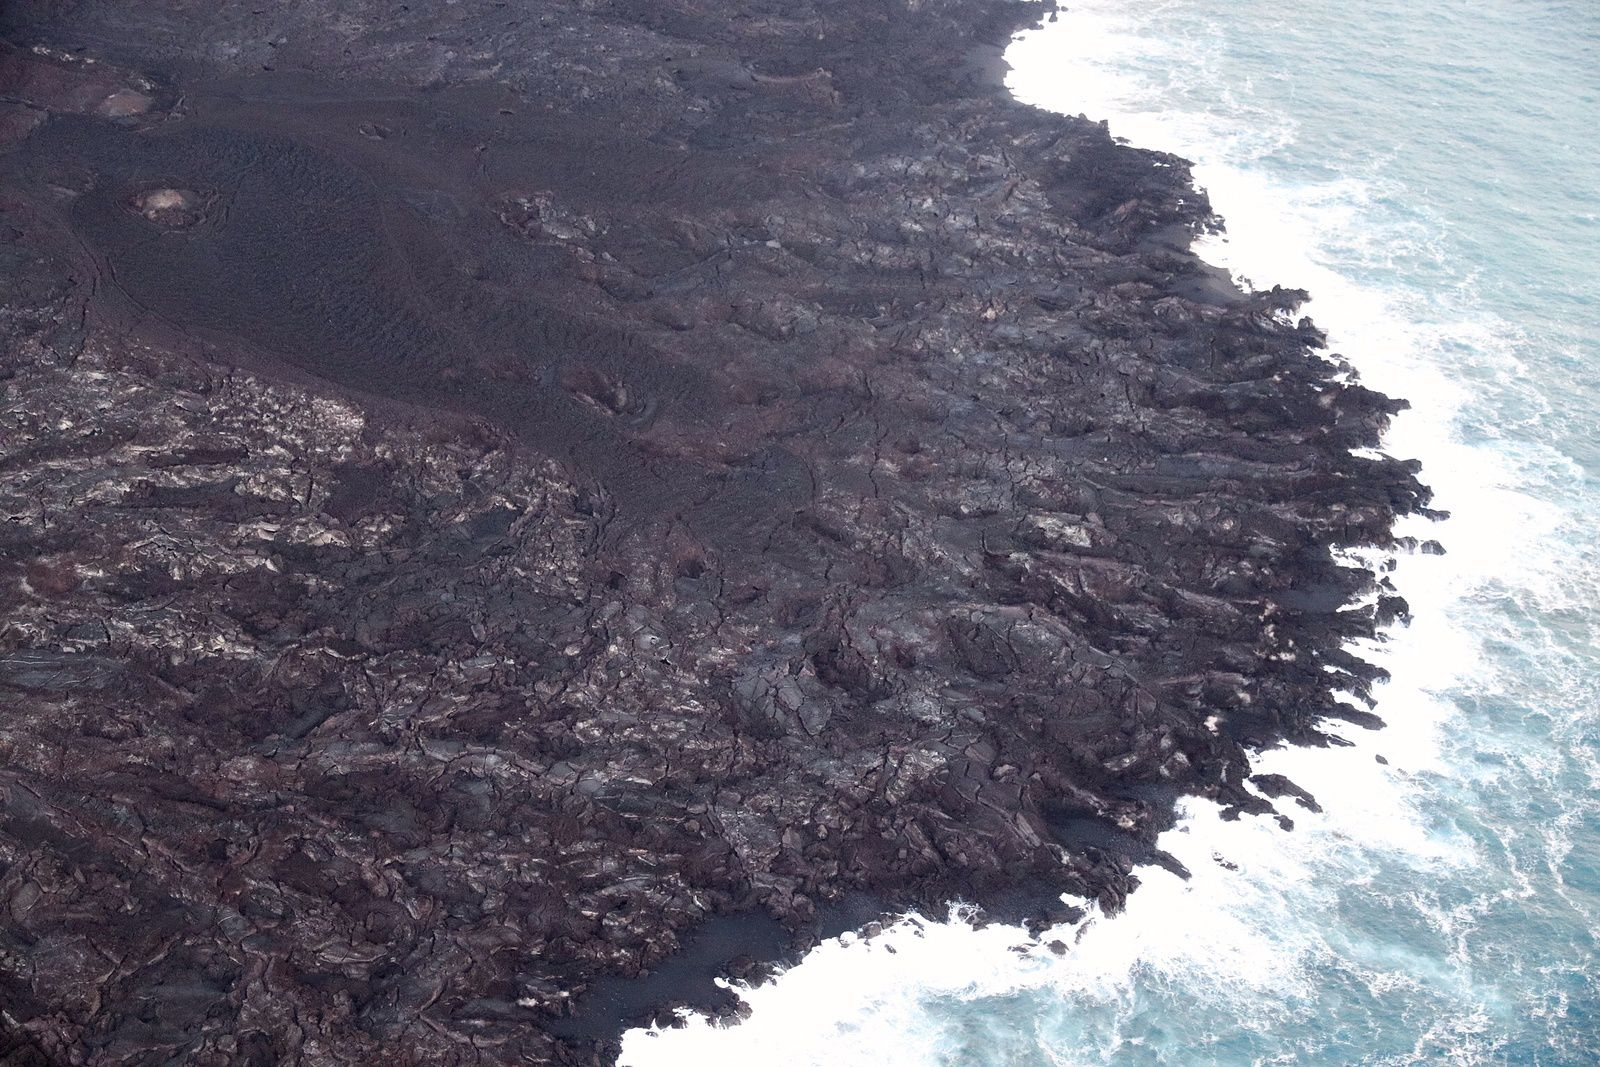 Kilauea - East rift zone - fractures parallel to the coastline in the lava delta at Kapoho - Photo HVO-USGS